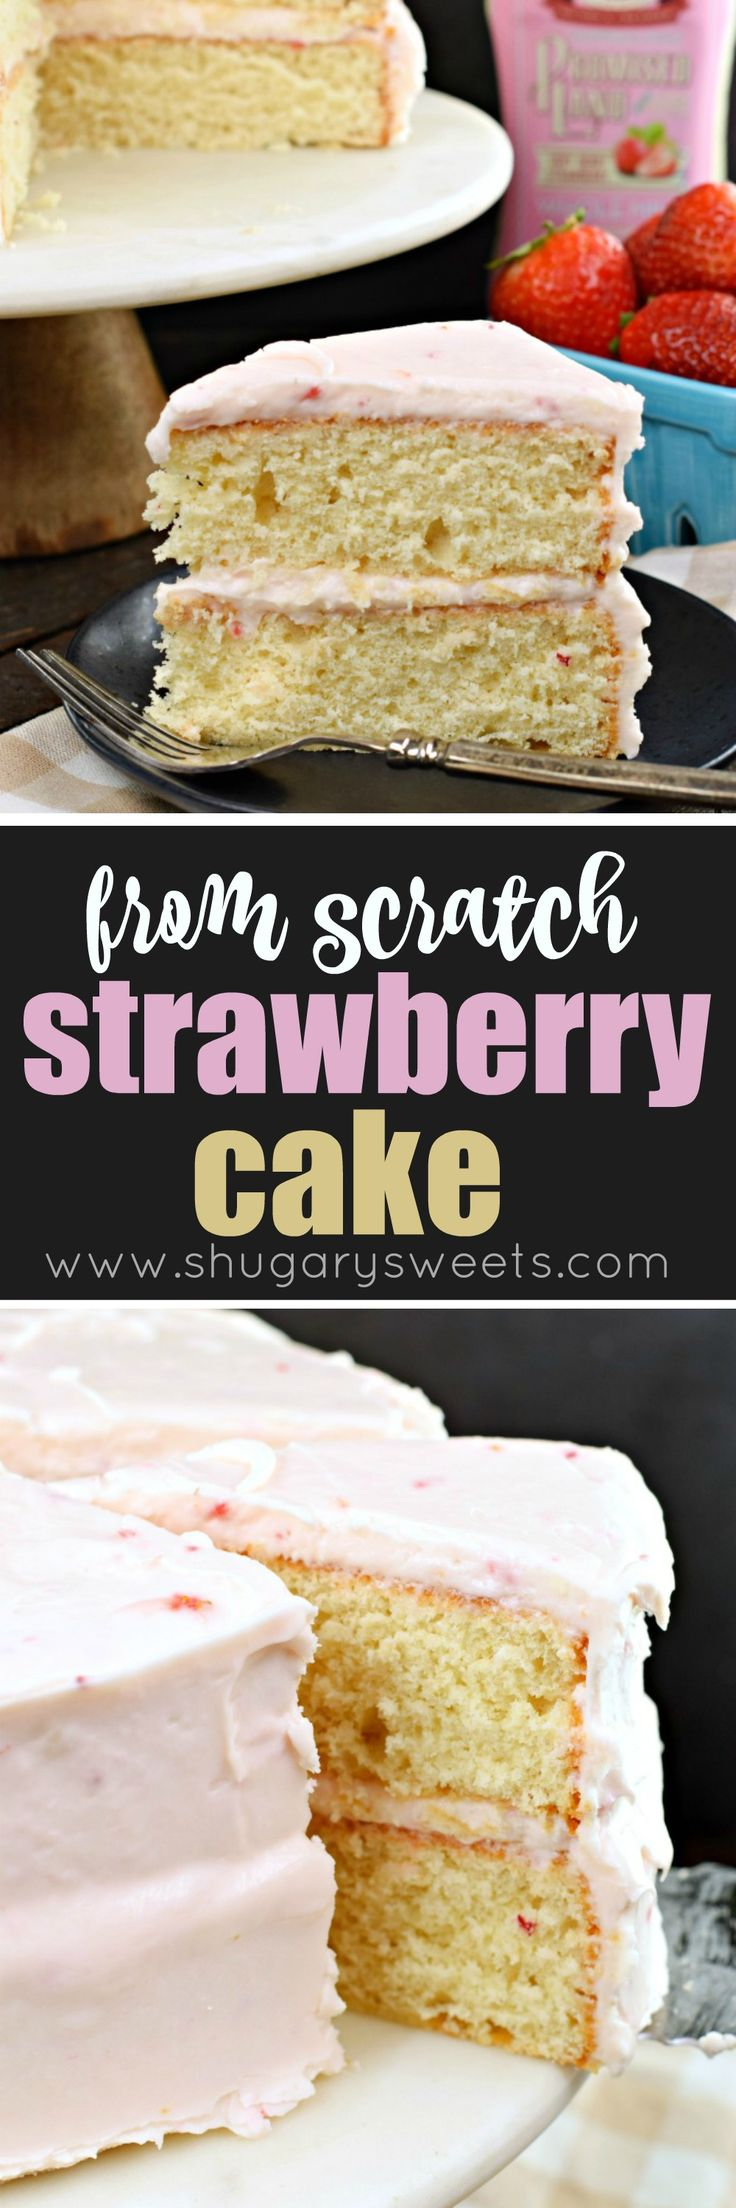 Strawberry Layer Cake, from scratch by Shugary Sweets